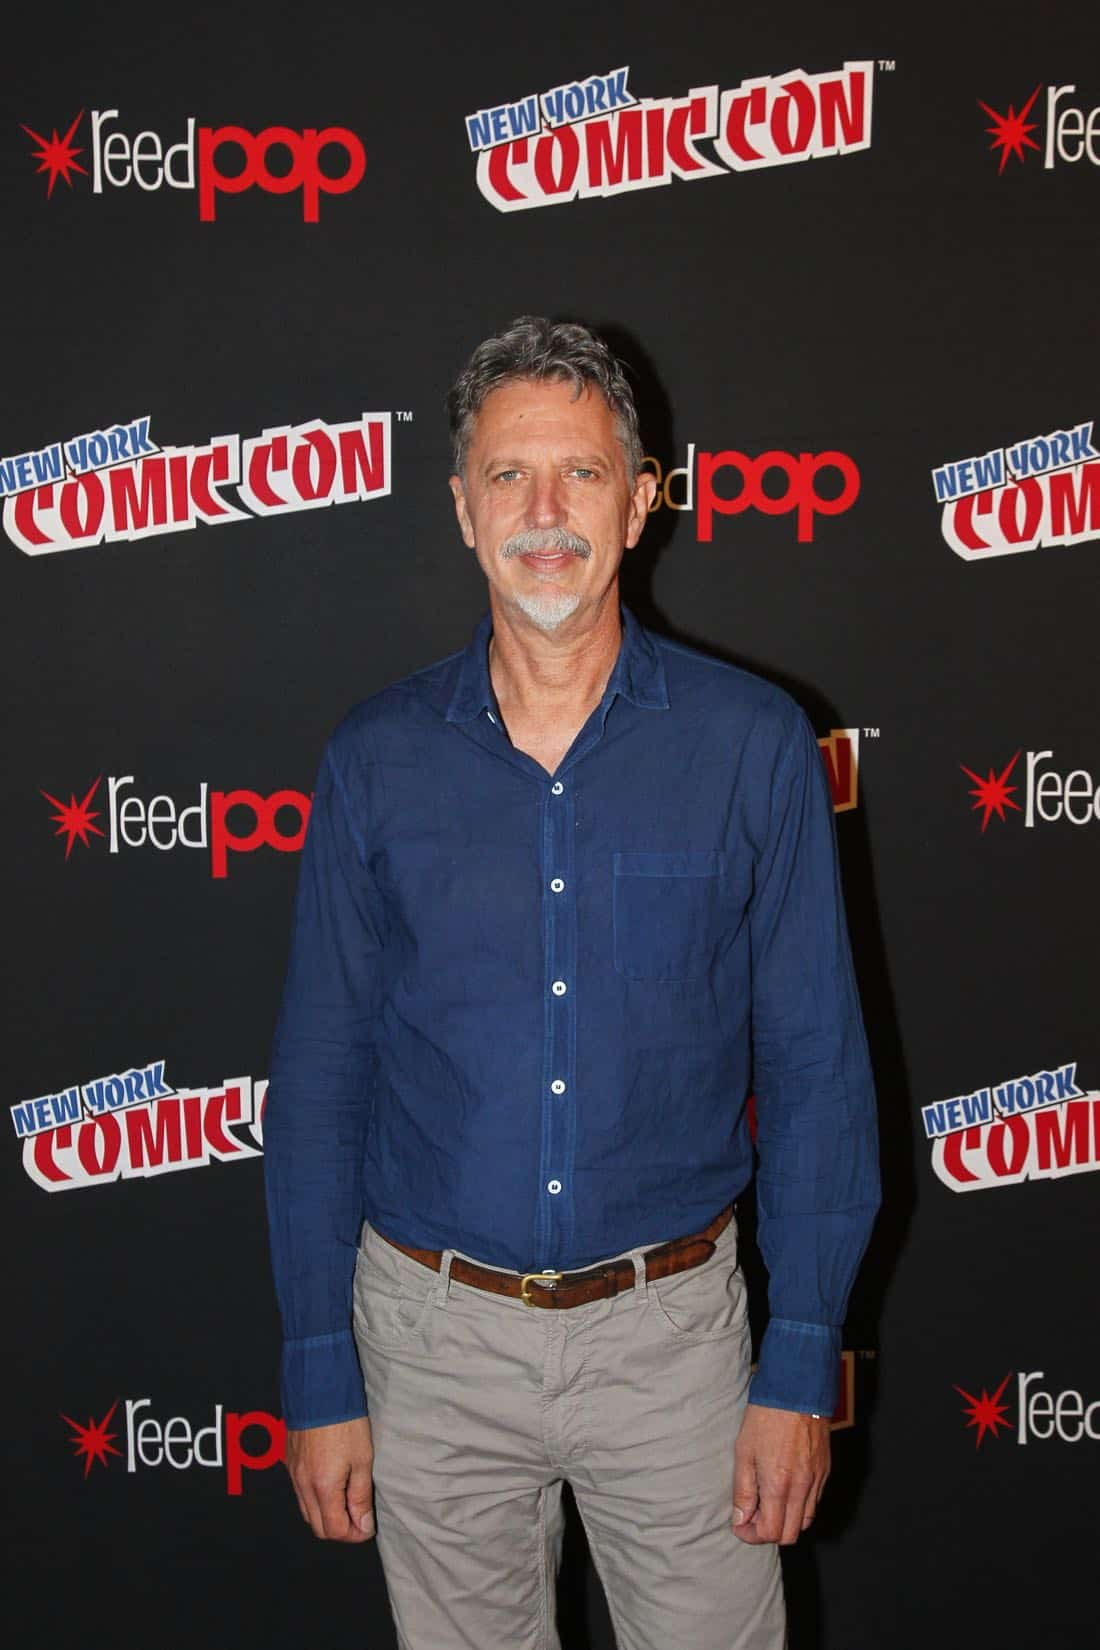 "NY COMIC-CON 2017 - Freeform's genre programming was out in full force at this year's New York Comic Con on Saturday, October 7th with executive producers and cast from the hit series ""Shadowhunters,"" ""Beyond,"" and new original series ""Siren.""  (ABC/Lou Rocco) TIM KRING (EXECUTIVE PRODUCER, BEYOND)"